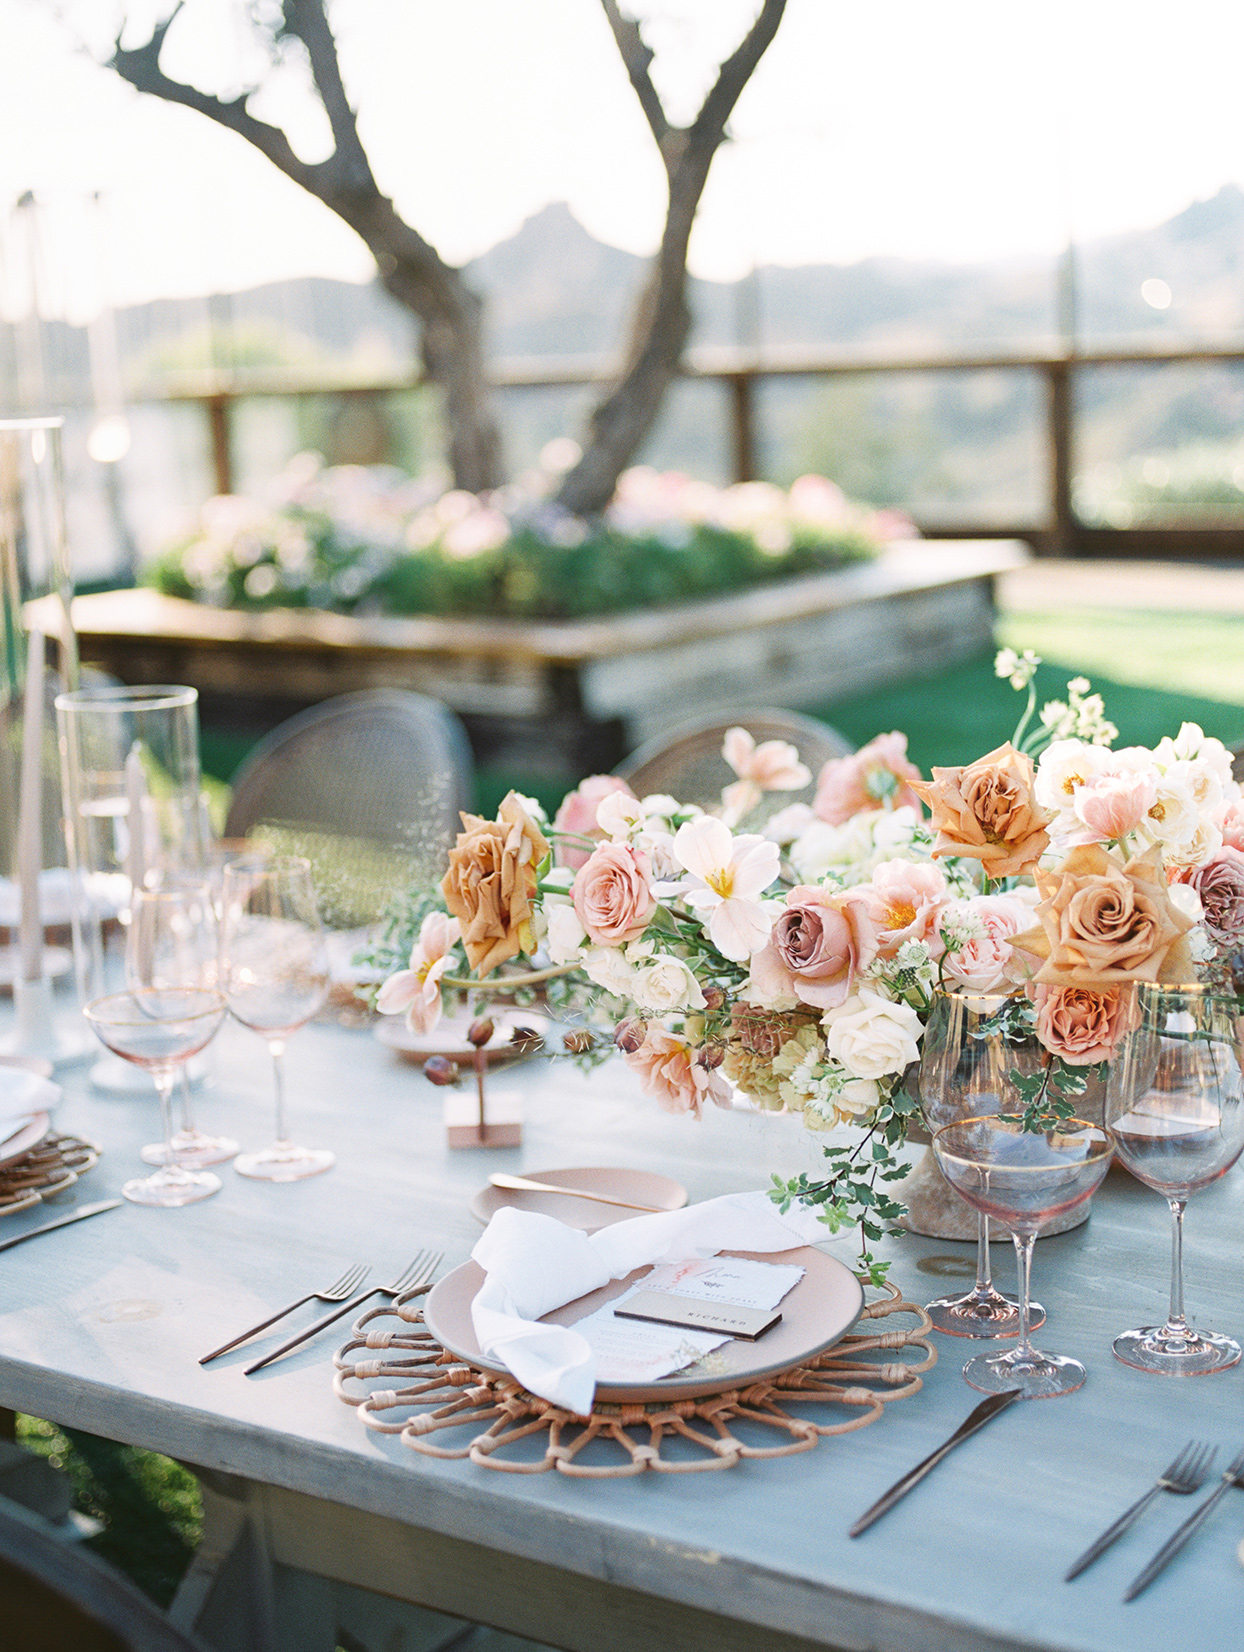 Wedding tabletop with blush and cream tones and dried flowers